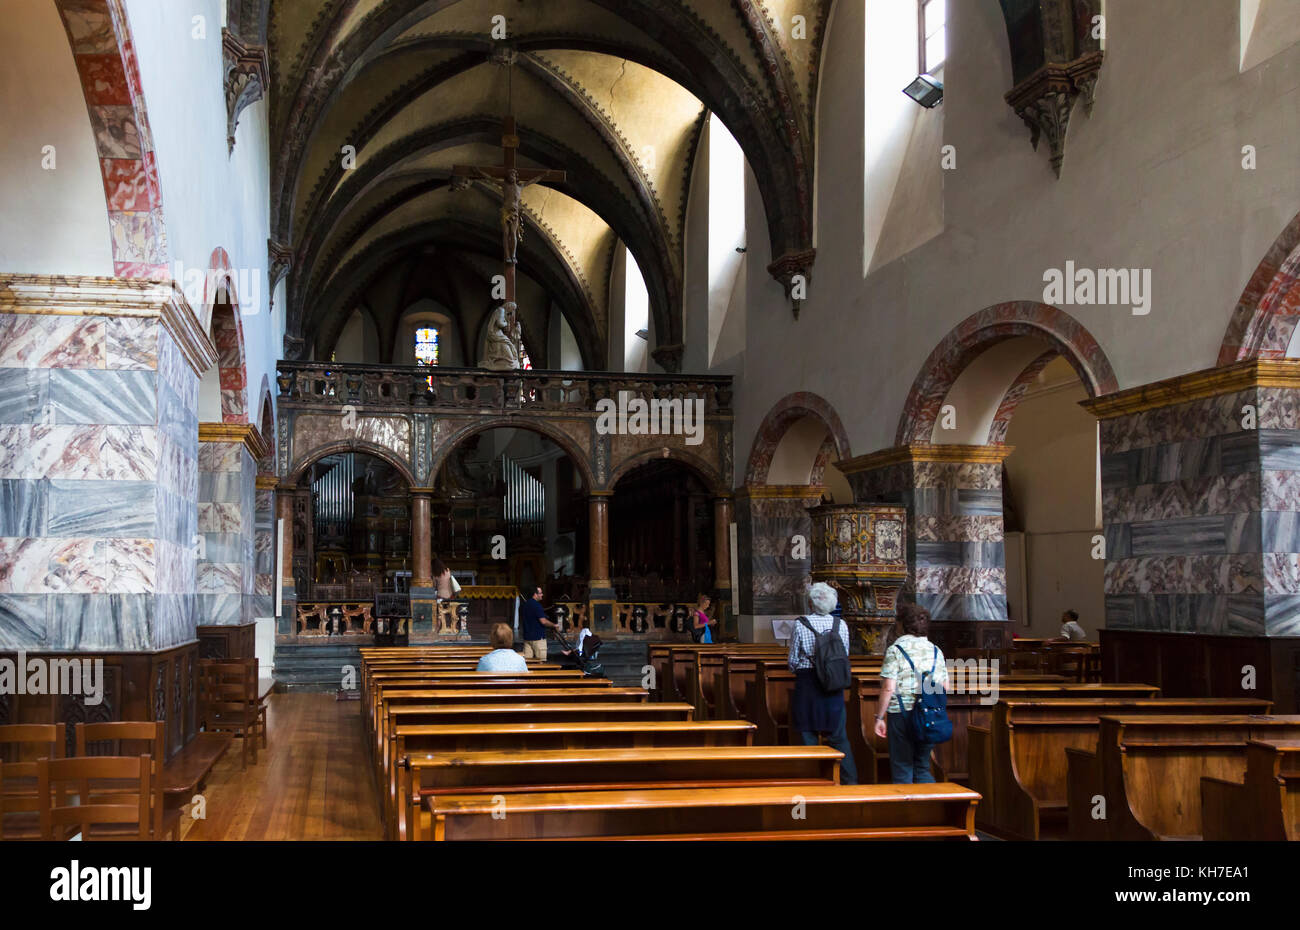 Aosta, Aosta Valley, Italy. Interior of the Collegiate church of Saint Orso. - Stock Image